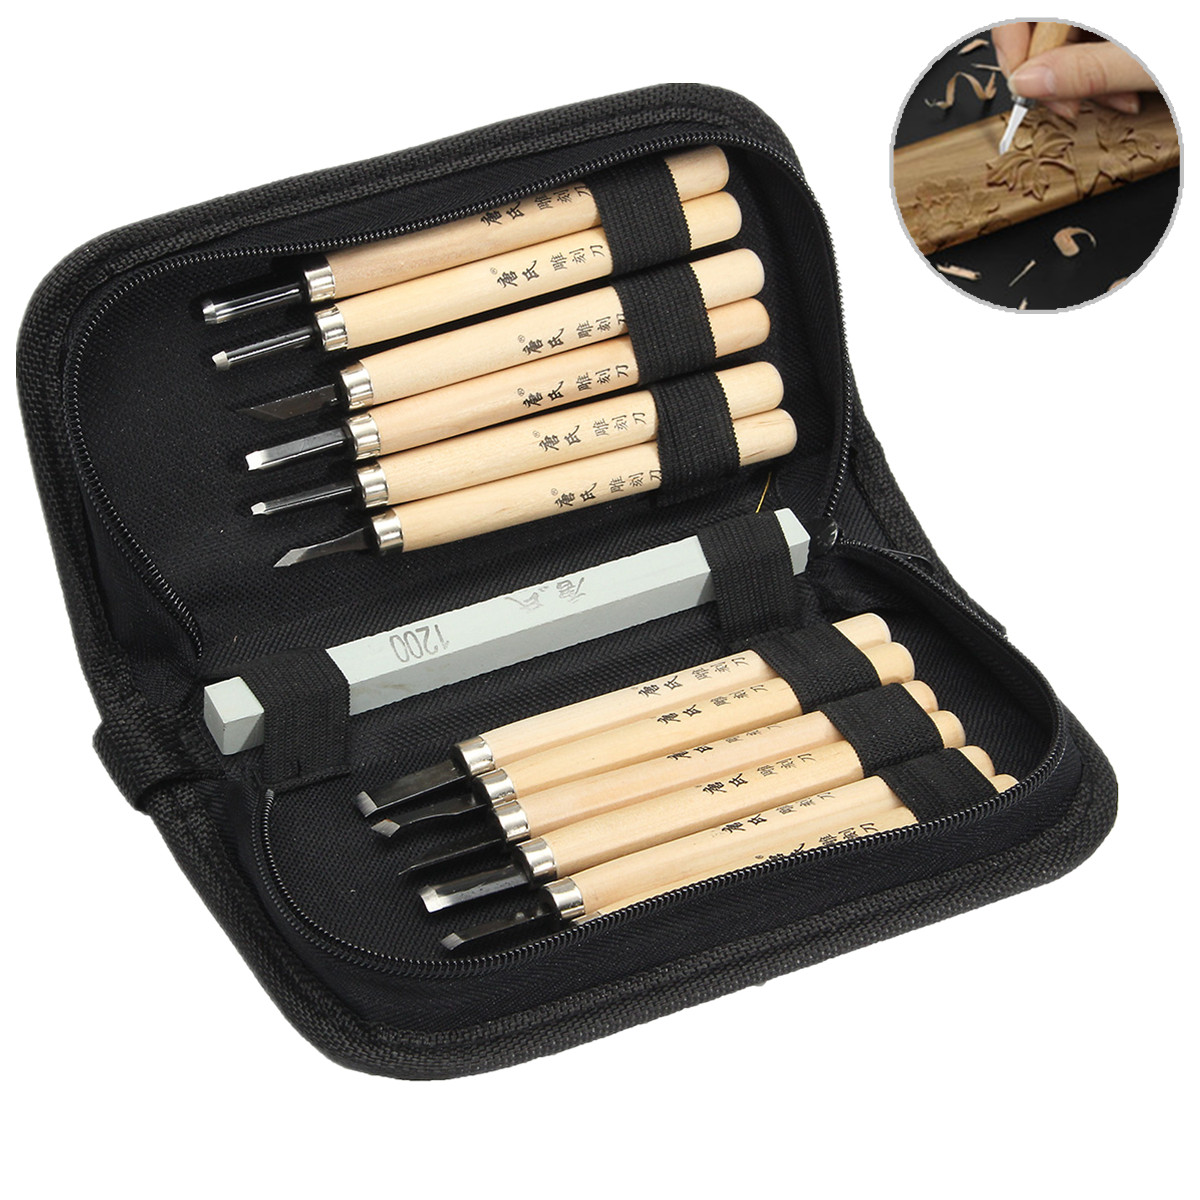 Hand Tool Sets Doersupp 12pcs Universal Professional Wood Carving Chisel Set Including Grindstone Apply For Wax Plaster Clay Similar Materials Tools